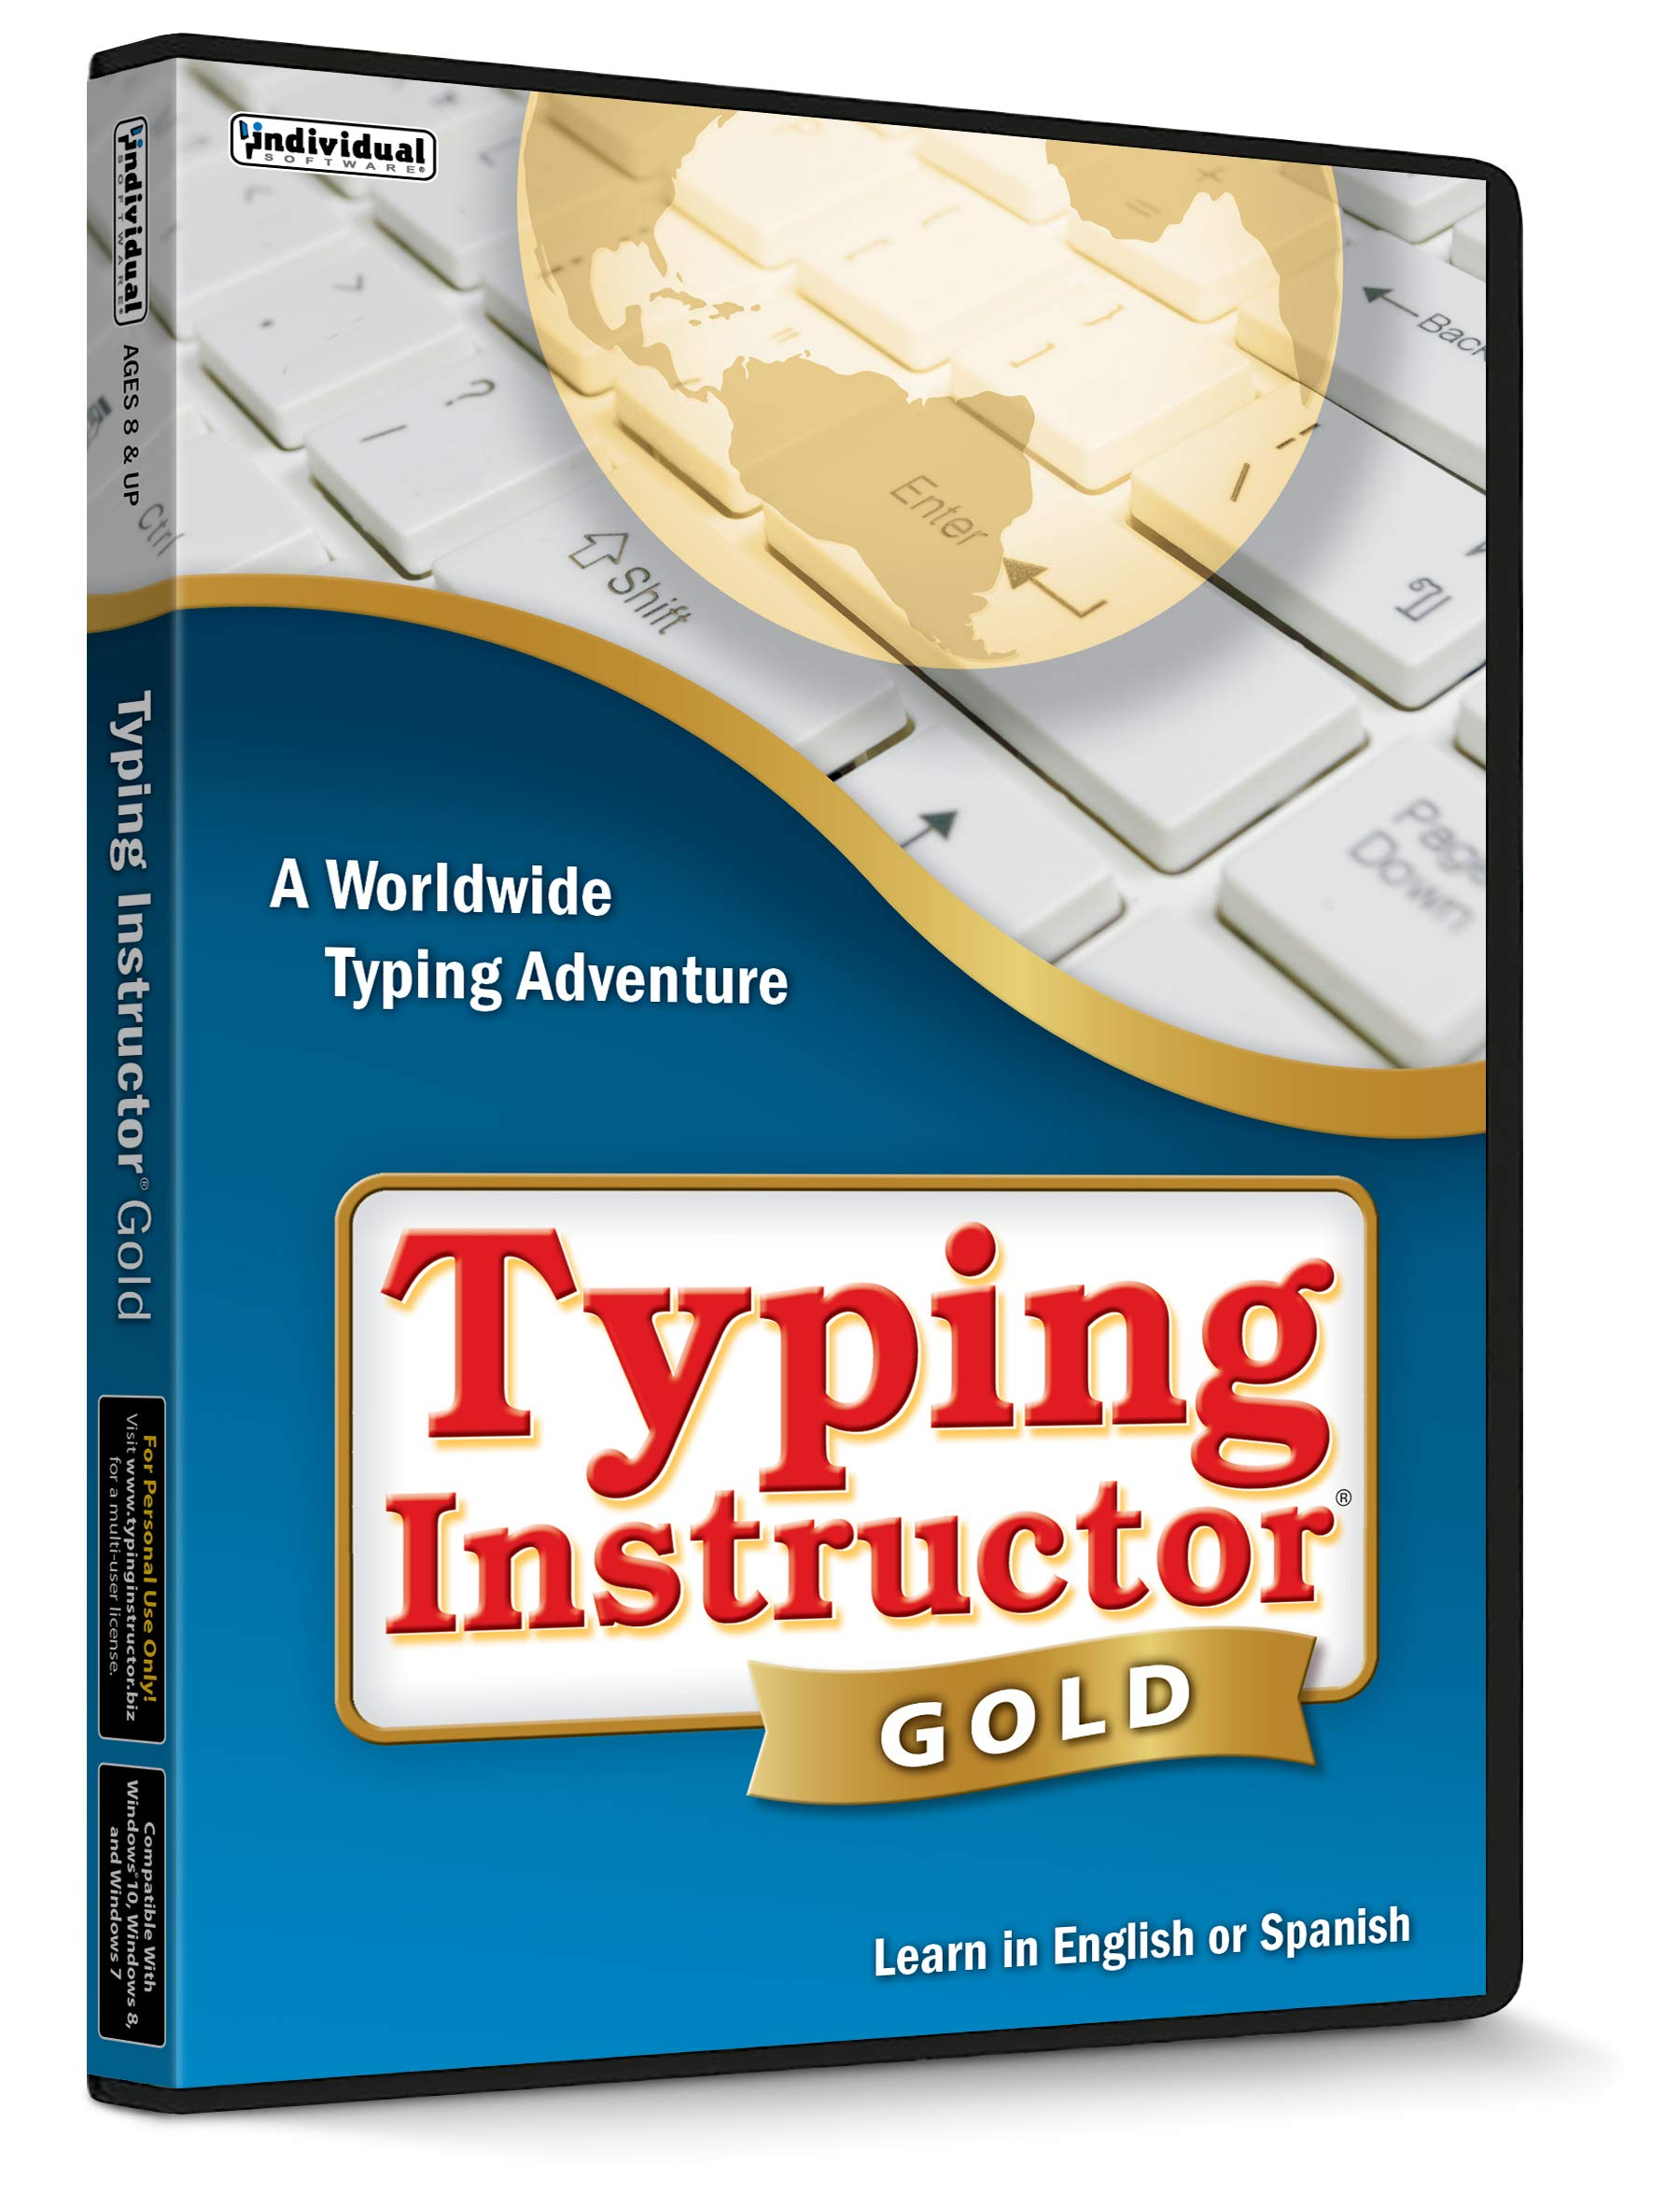 Typing Instructor Gold by Individual Software